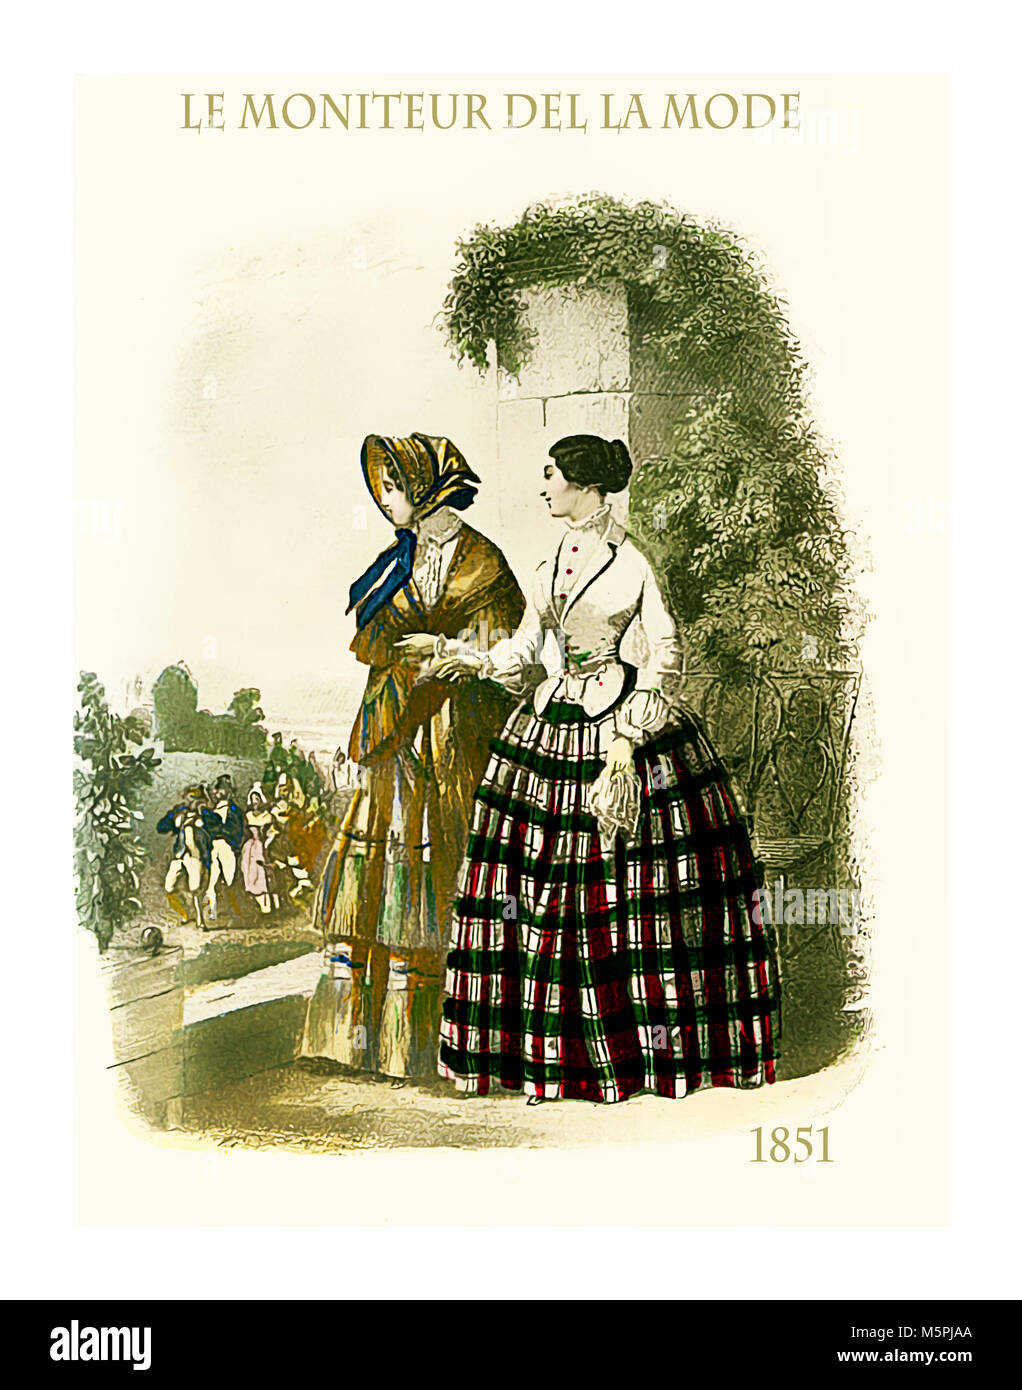 1851 vintage fashion, French magazine Le Moniteur de la Mode presents two ladies outdoor in a beautiful garden with - Stock Image